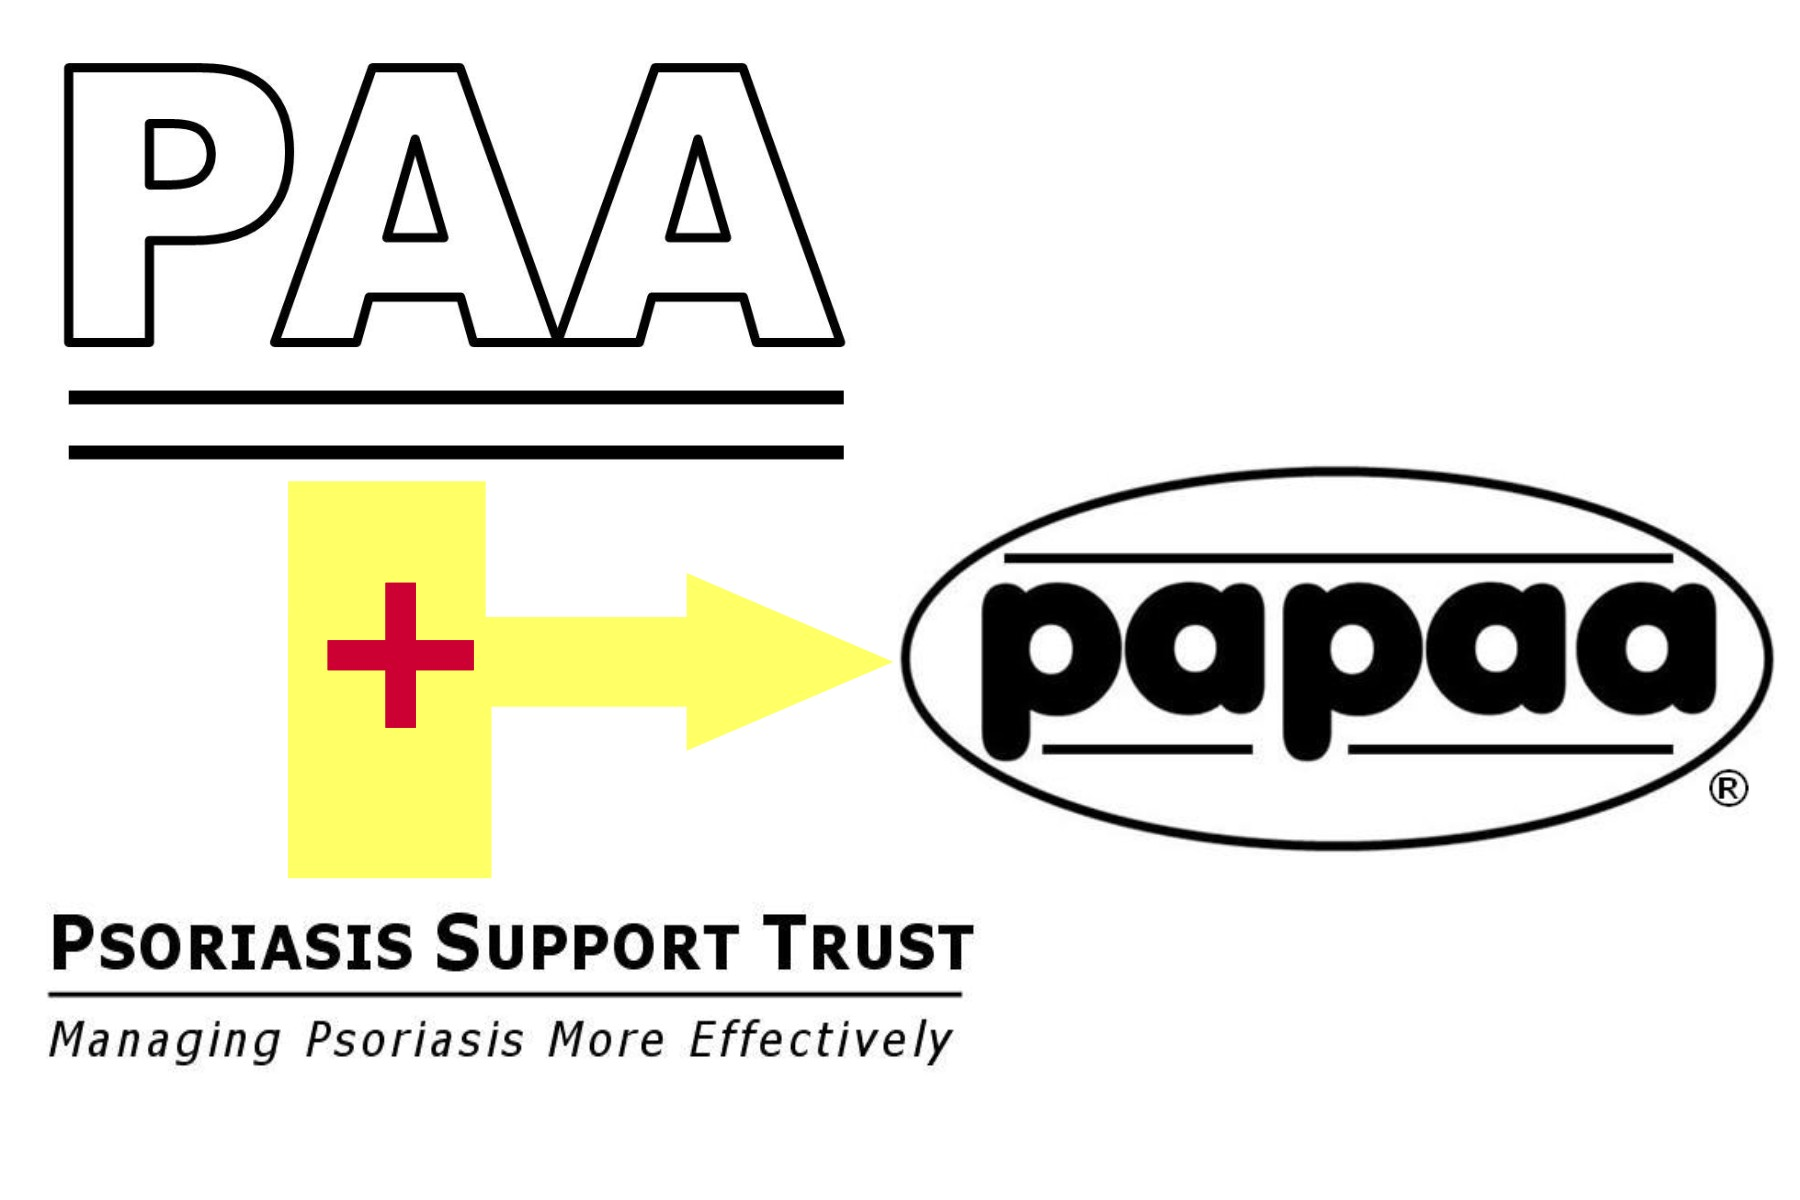 PAA & PST merged into PAPAA